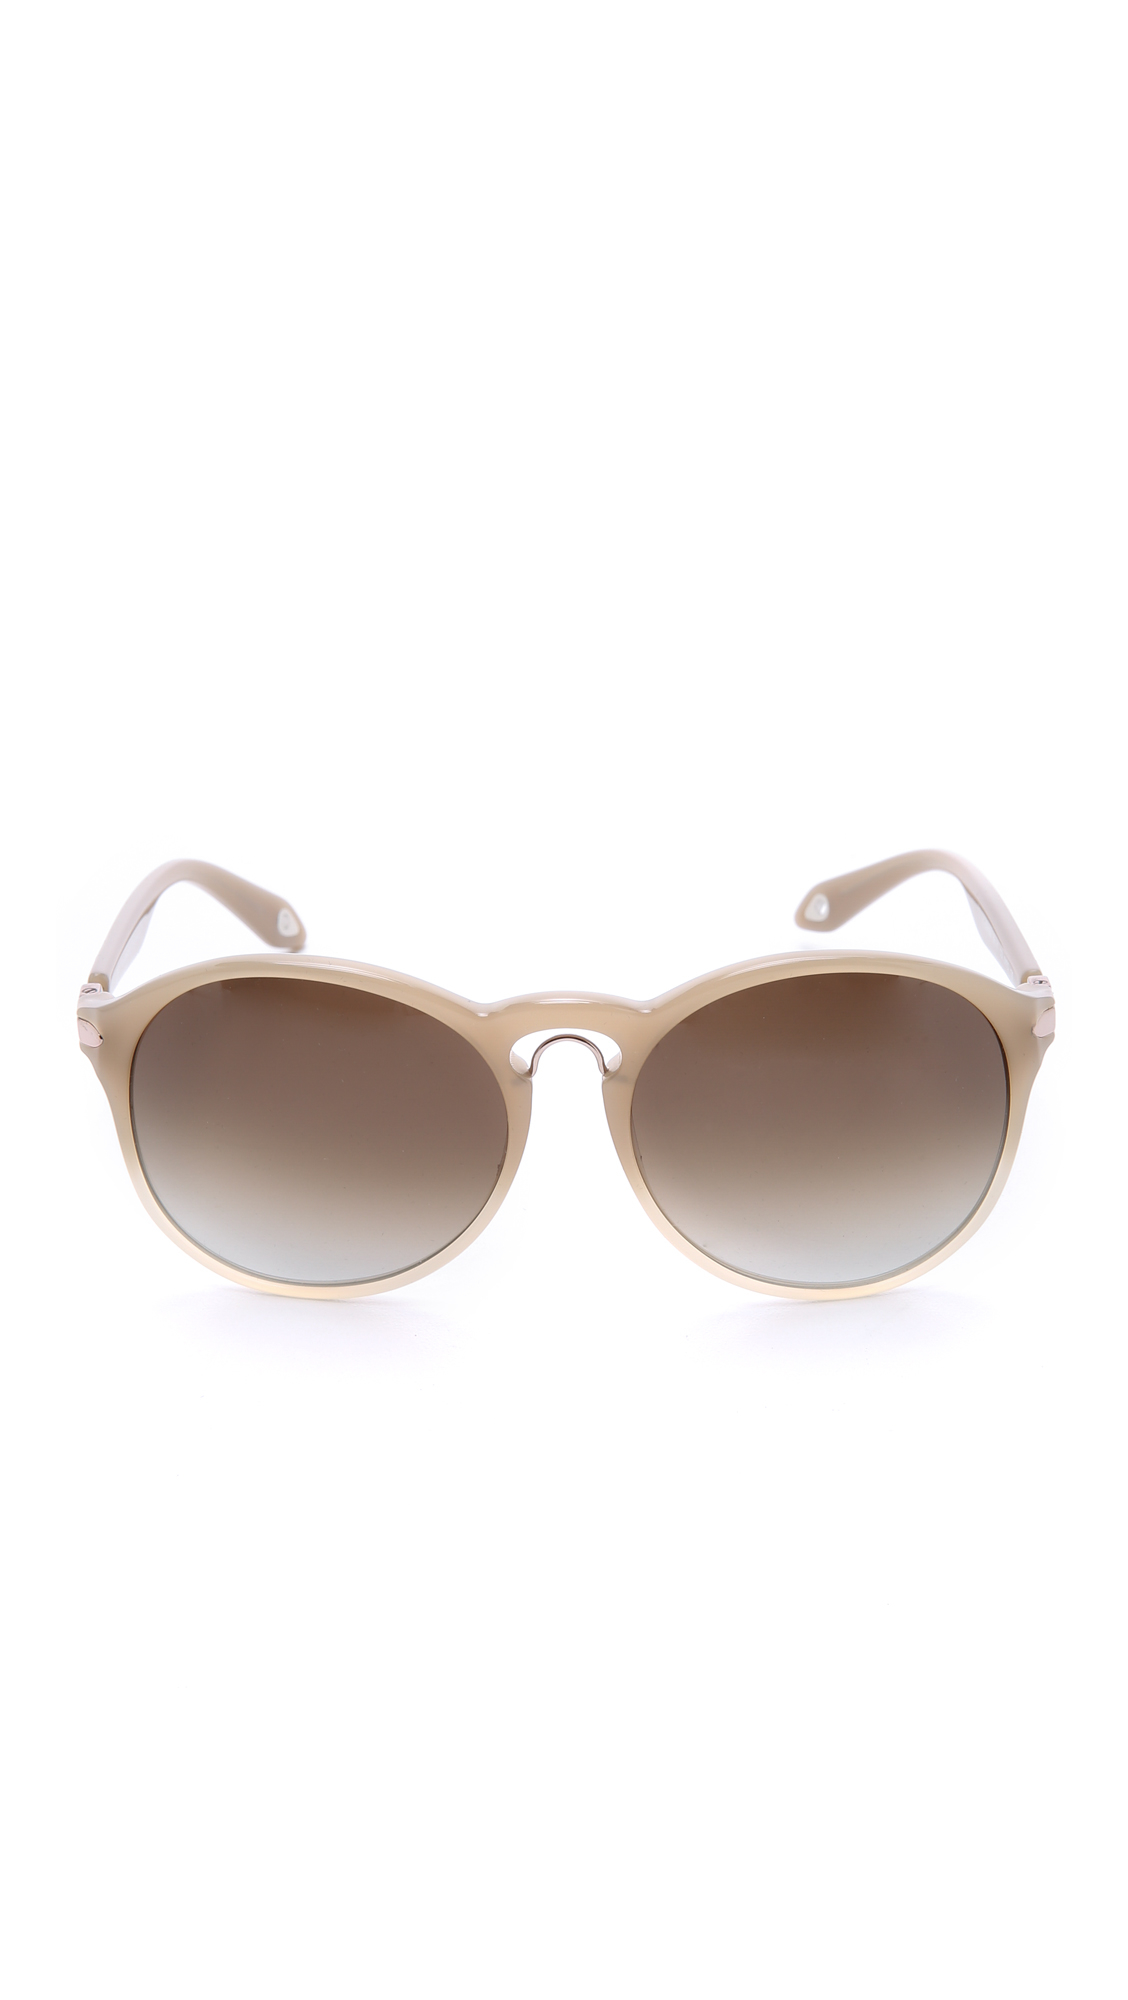 Lyst - Givenchy Metal Bridge Sunglasses in Natural